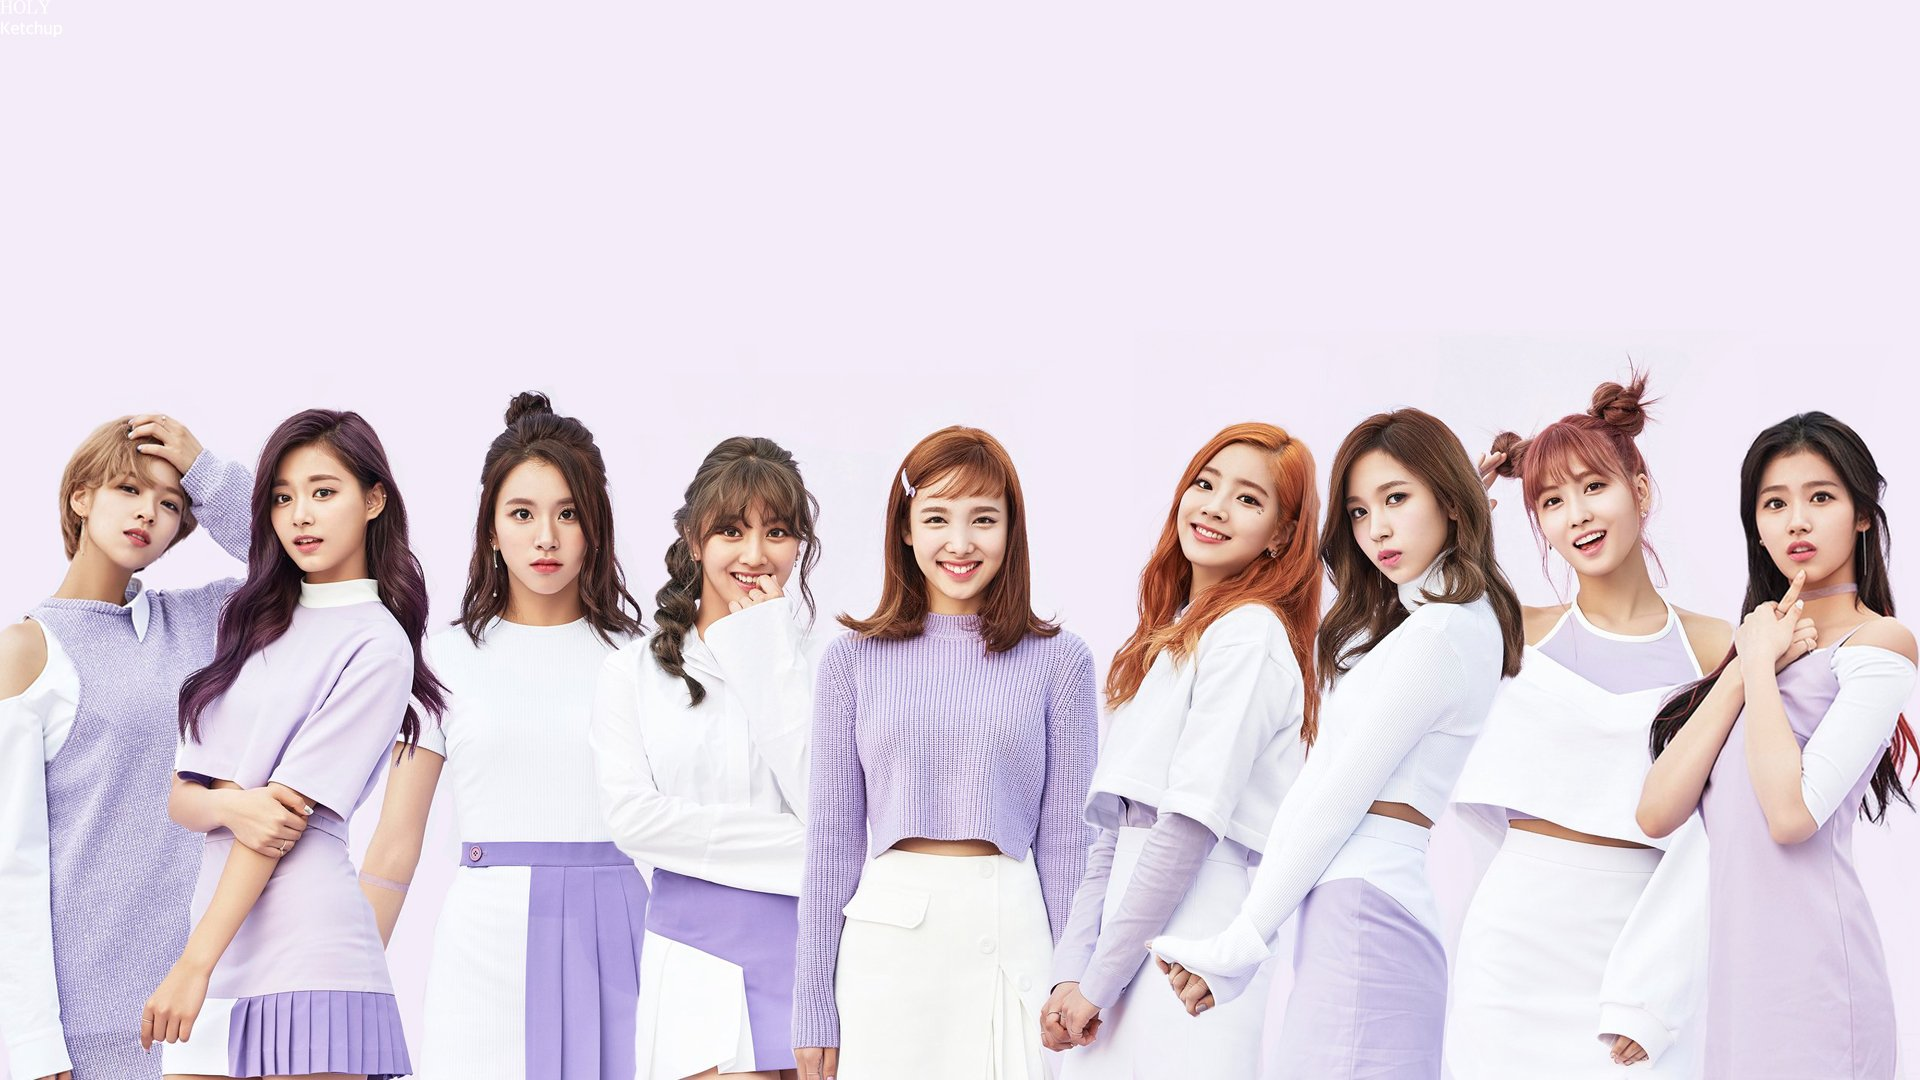 Twice Girls Cuties Hd Wallpaper Background Image 1920x1080 Id